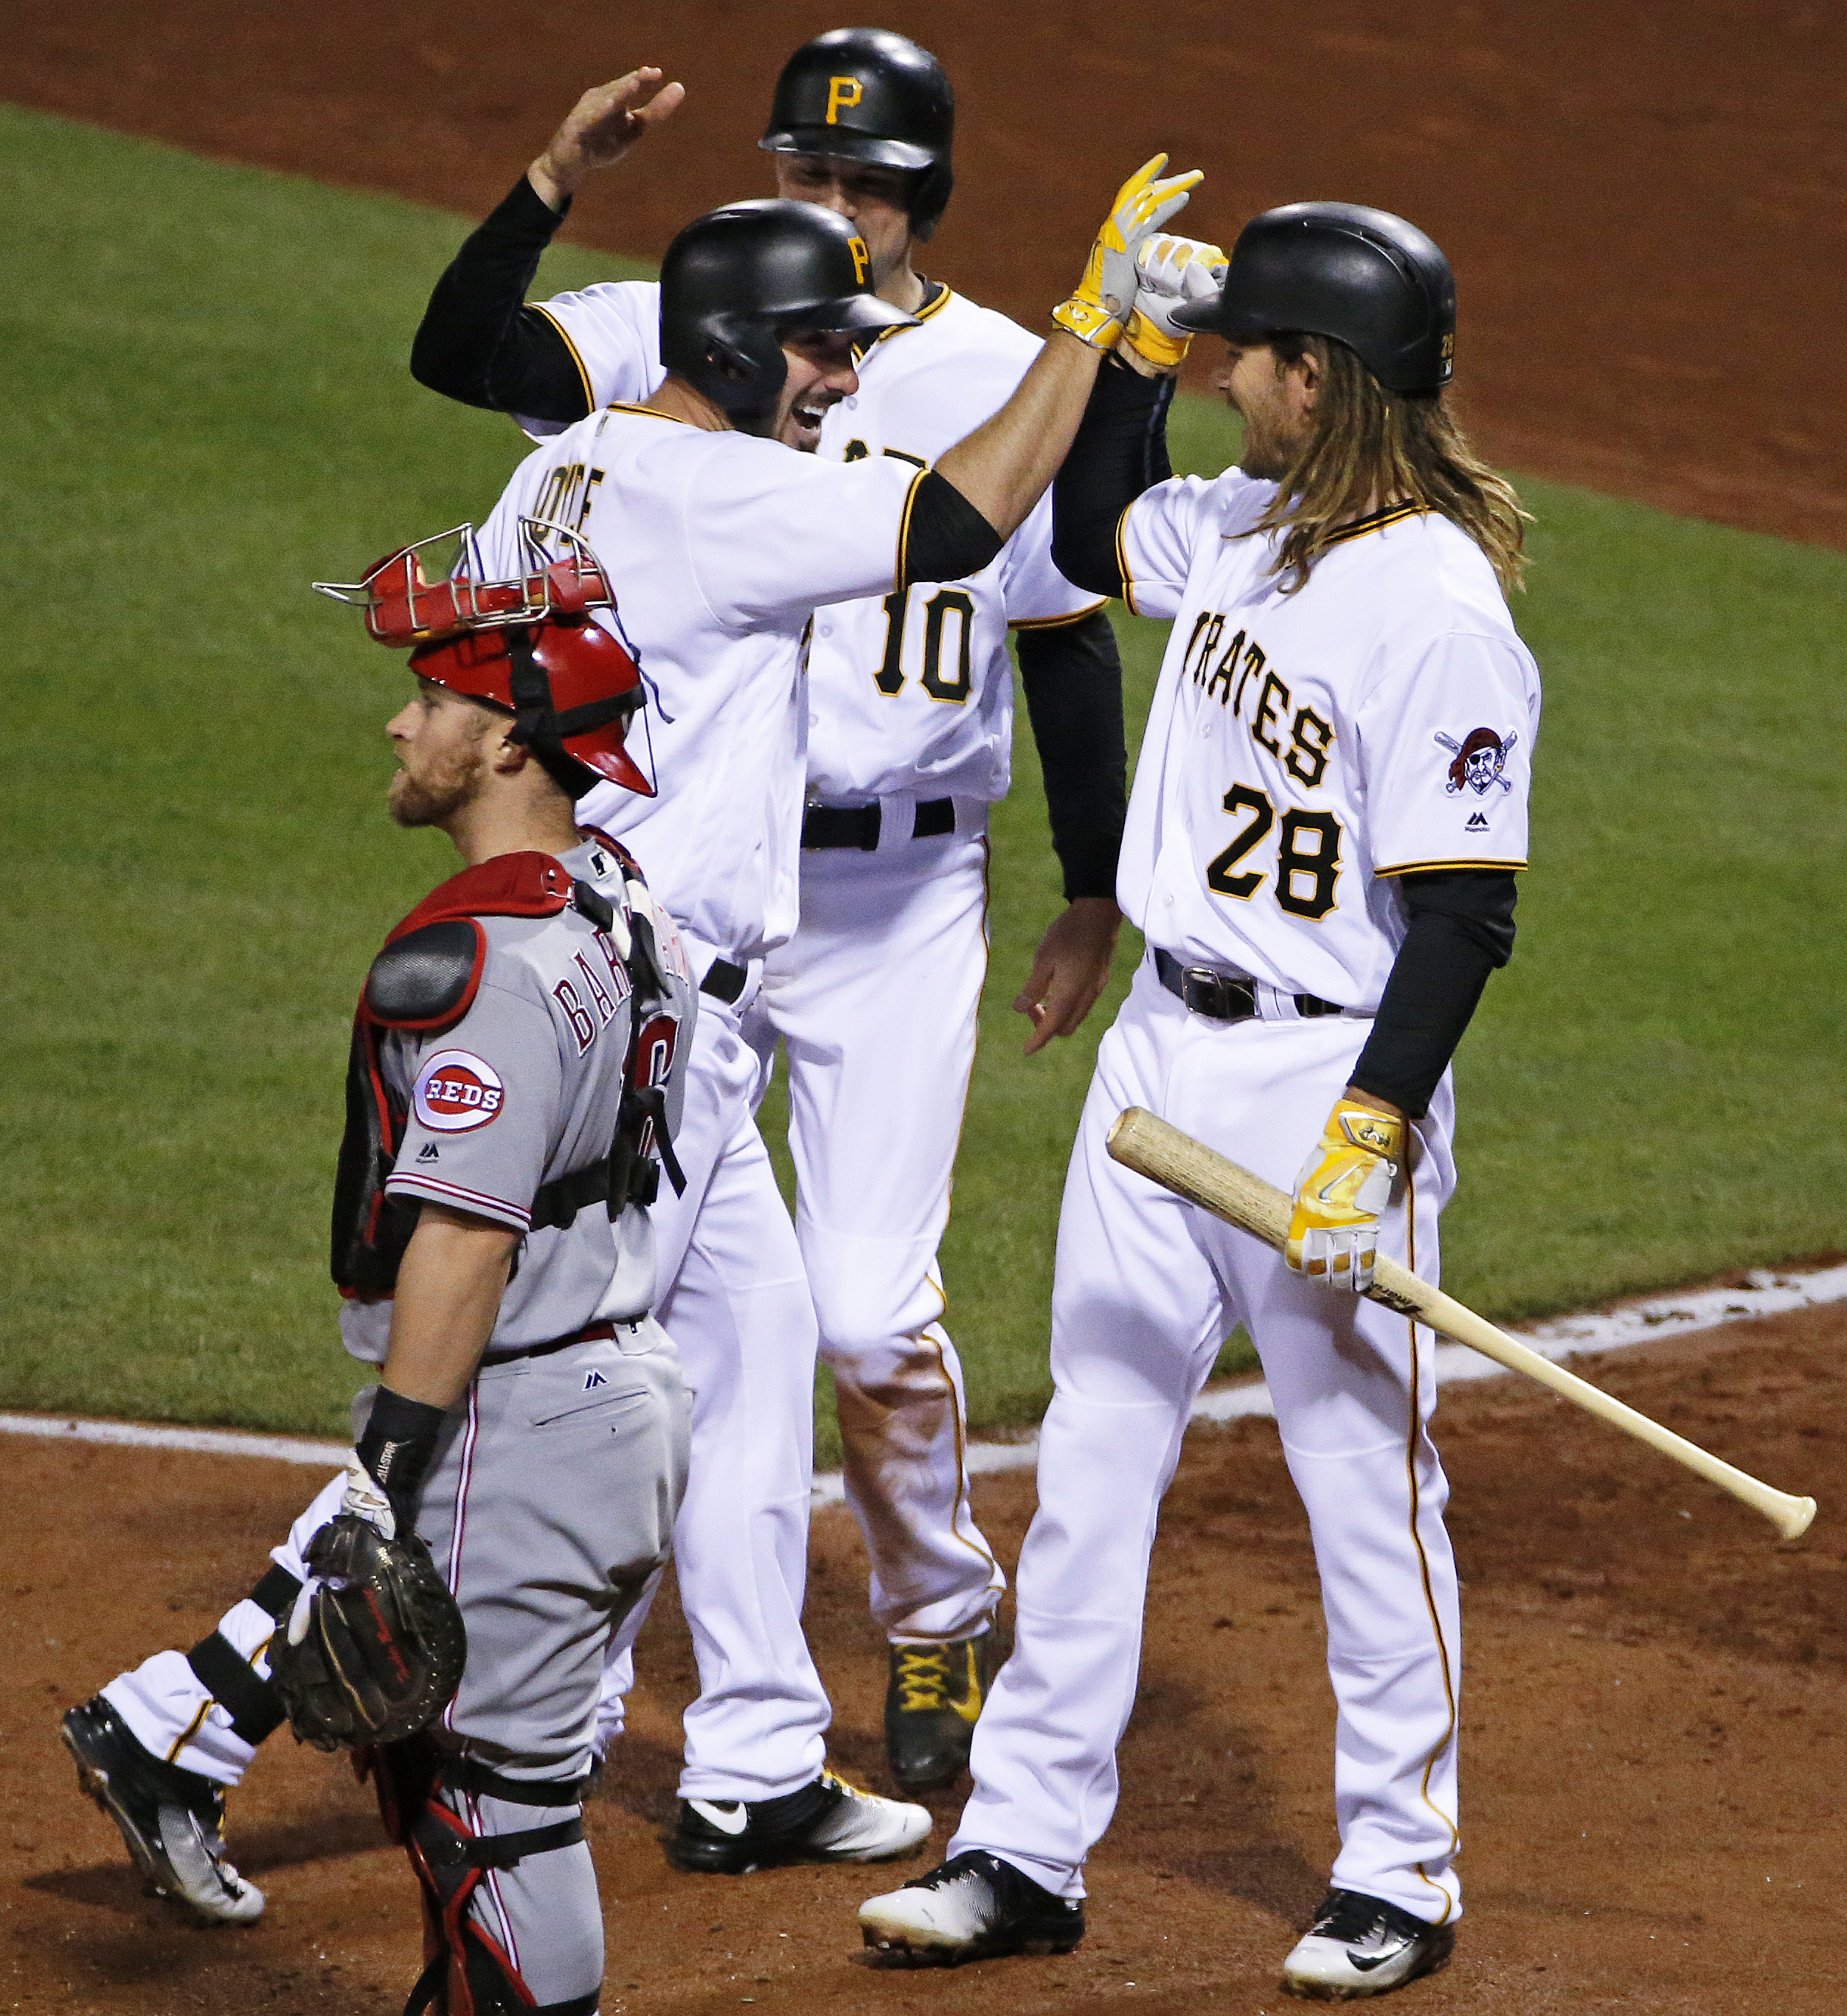 Pittsburgh Pirates' Matt Joyce, center, celebrates his two-run home run off Cincinnati Reds relief pitcher J.J. Hoover with teammates Jordy Mercer, rear, and John Jaso (28), next to Cincinnati Reds catcher Tucker Barnhart during the seventh inning of a ba